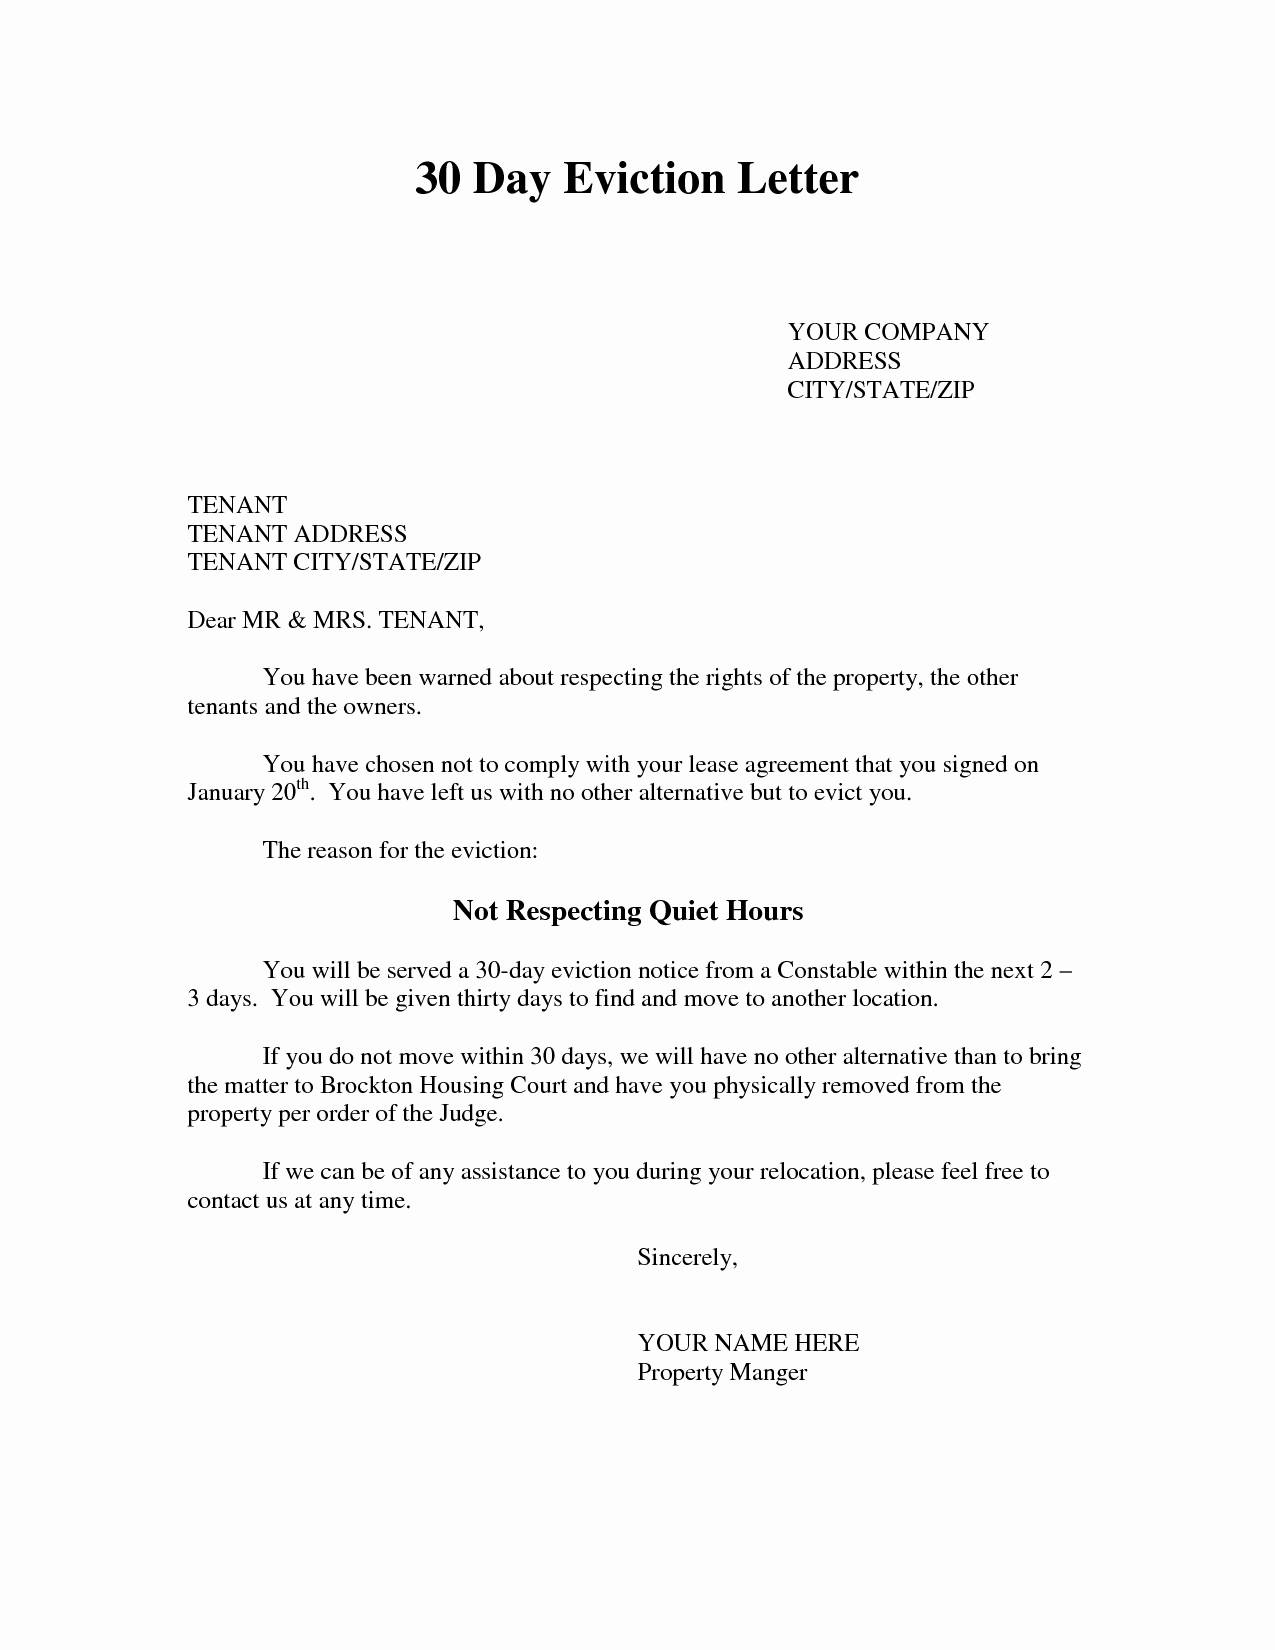 Eviction Notice Letter Template - Tenant Eviction Letter Template Fresh Eviction Notice Template